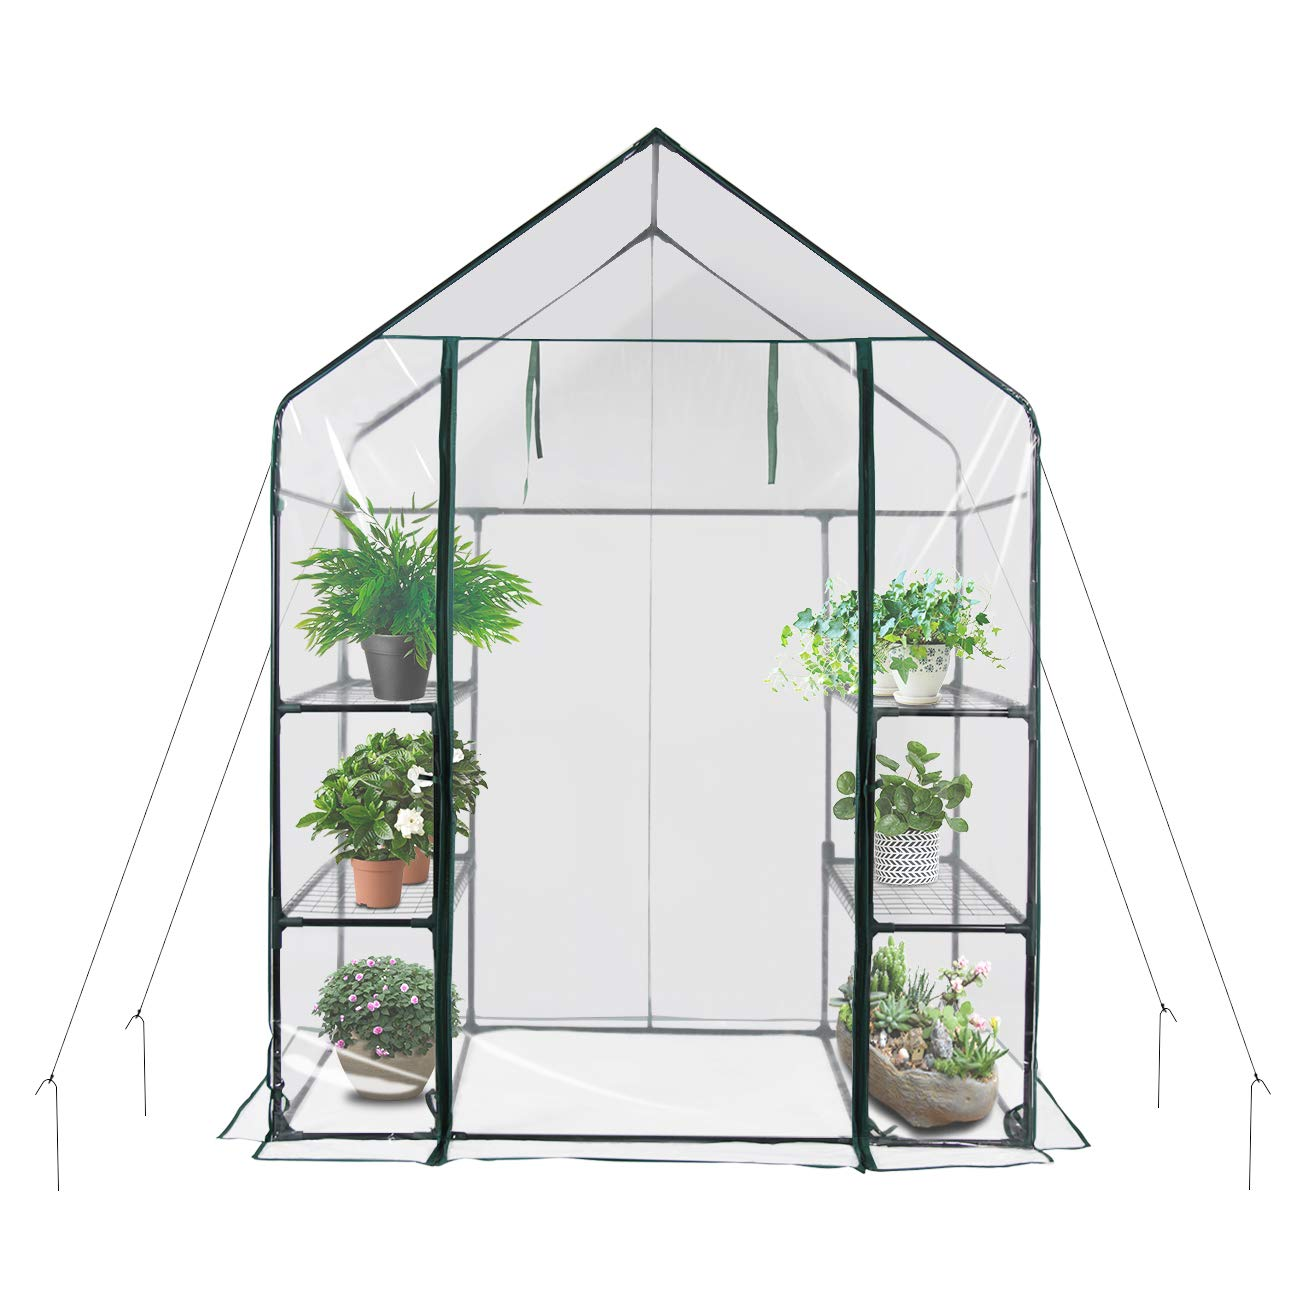 New Mini Walk-in Greenhouse Portable Flower Garden, With Clear PVC Cover, Strong Metal Frame, 3 Tiers 6 Shelves, Size 56''W x 29''D x 77''H by Yijin